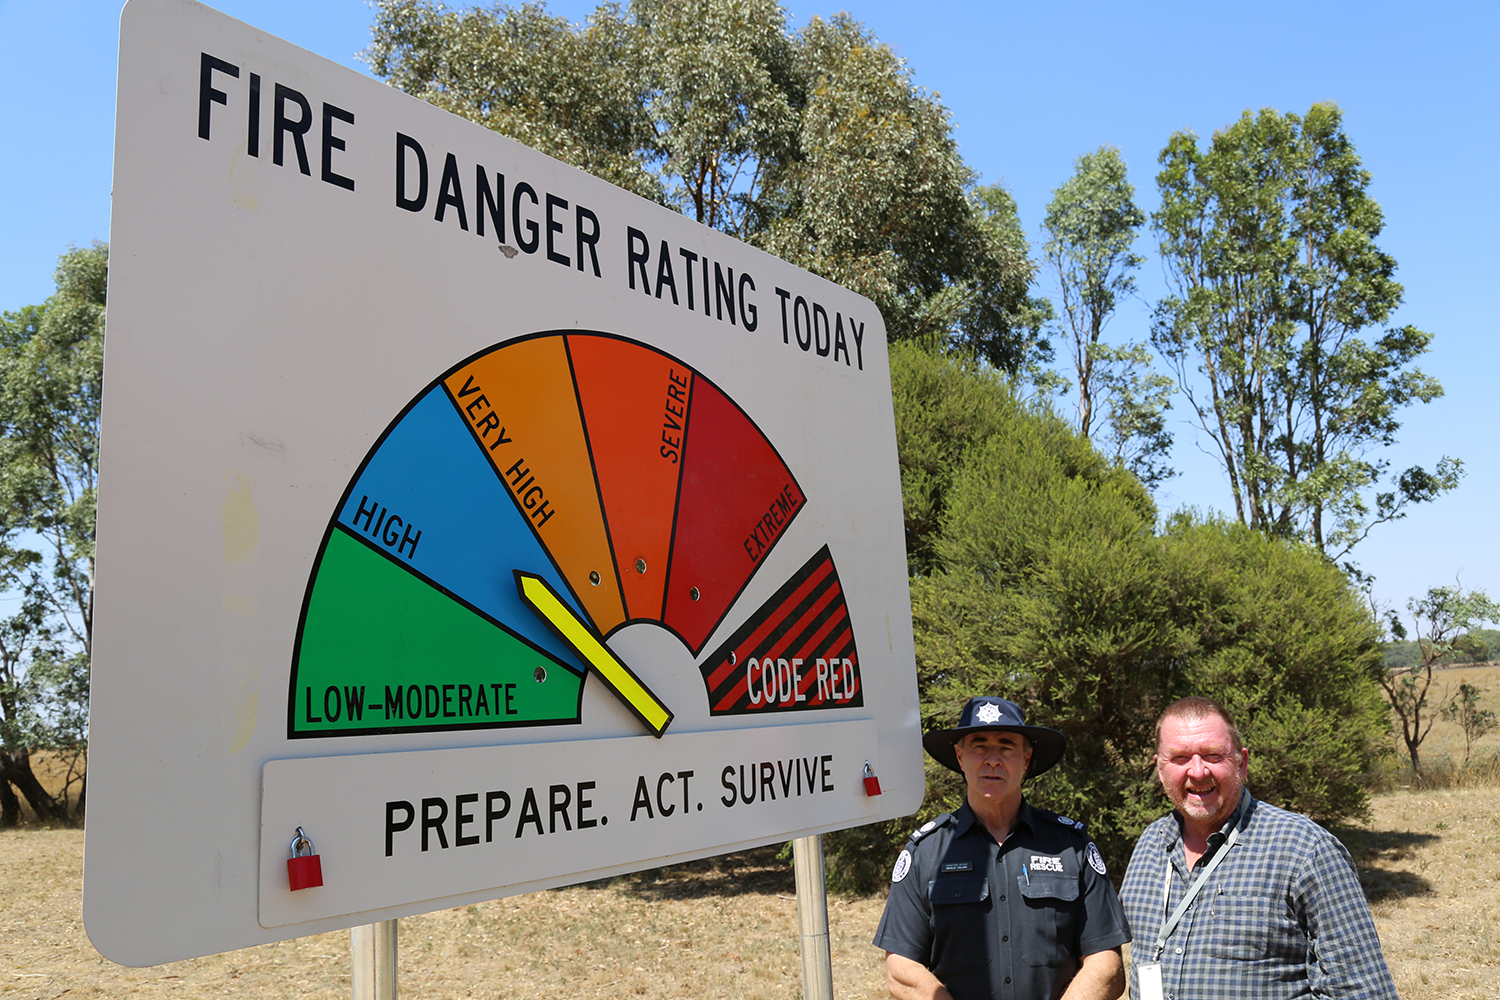 Fire danger rating signs